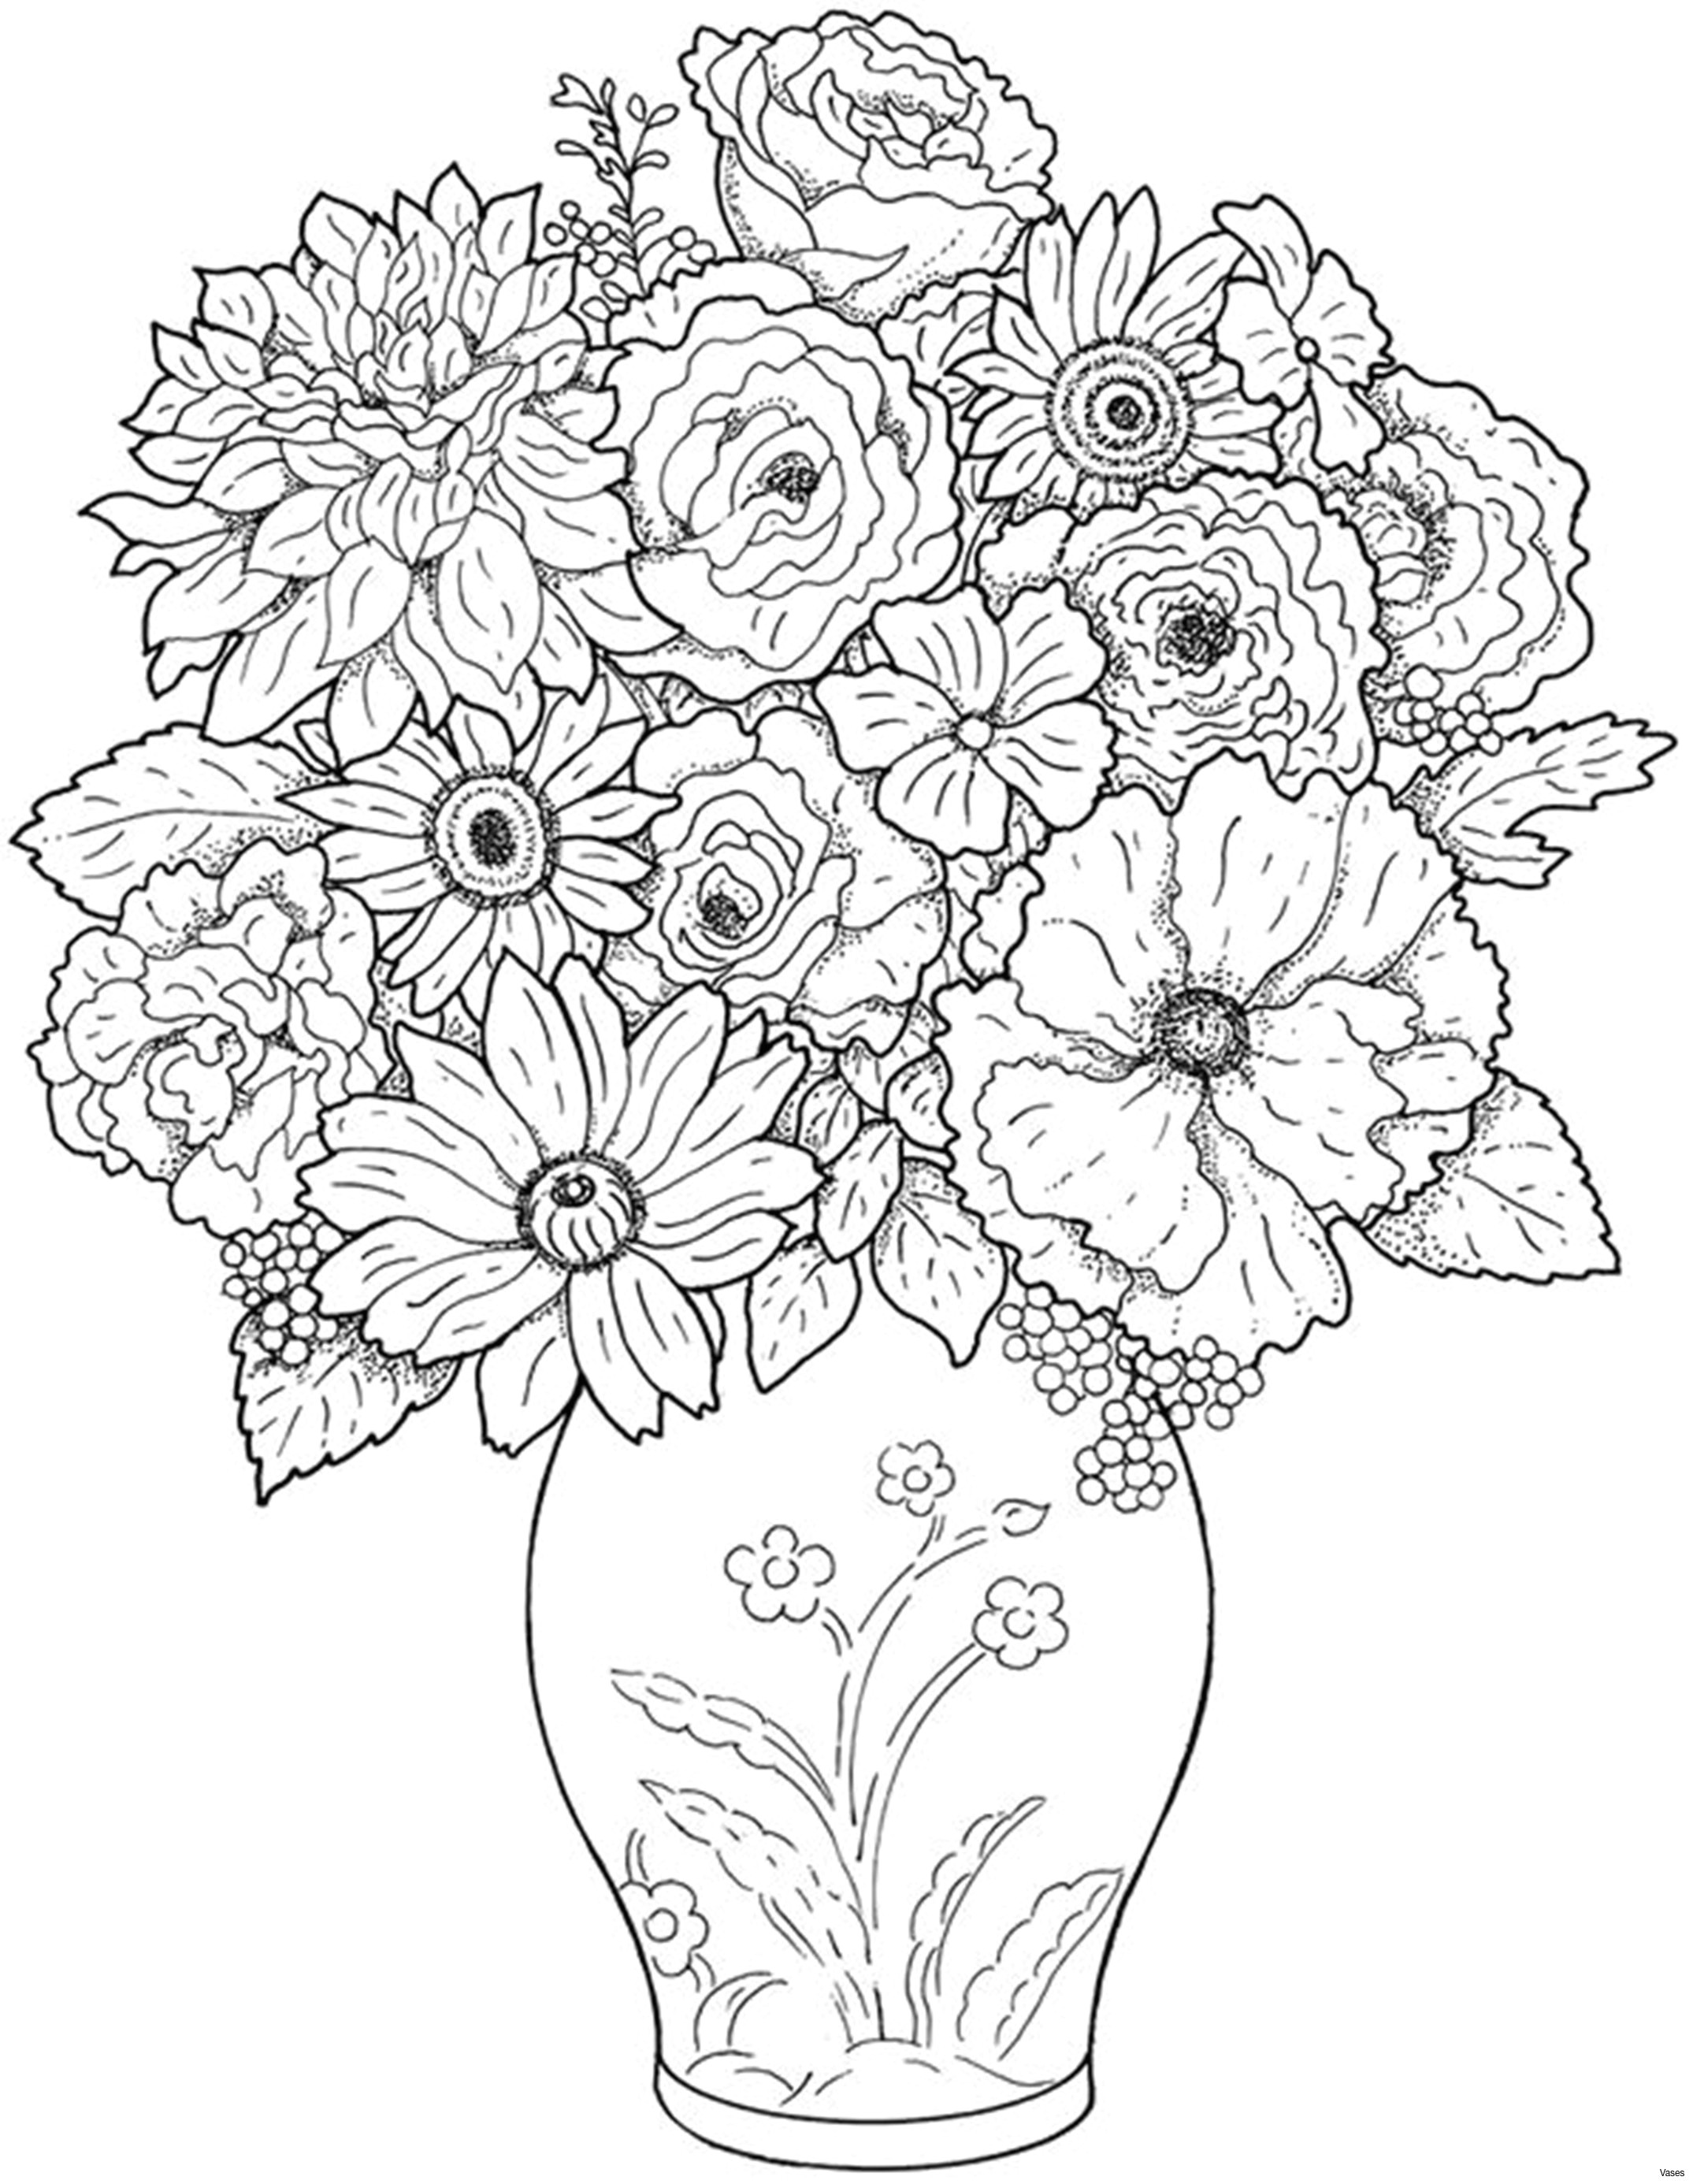 Drawing Of Flowers with Vase Www Colouring Pages Aua Ergewohnliche Cool Vases Flower Vase Coloring